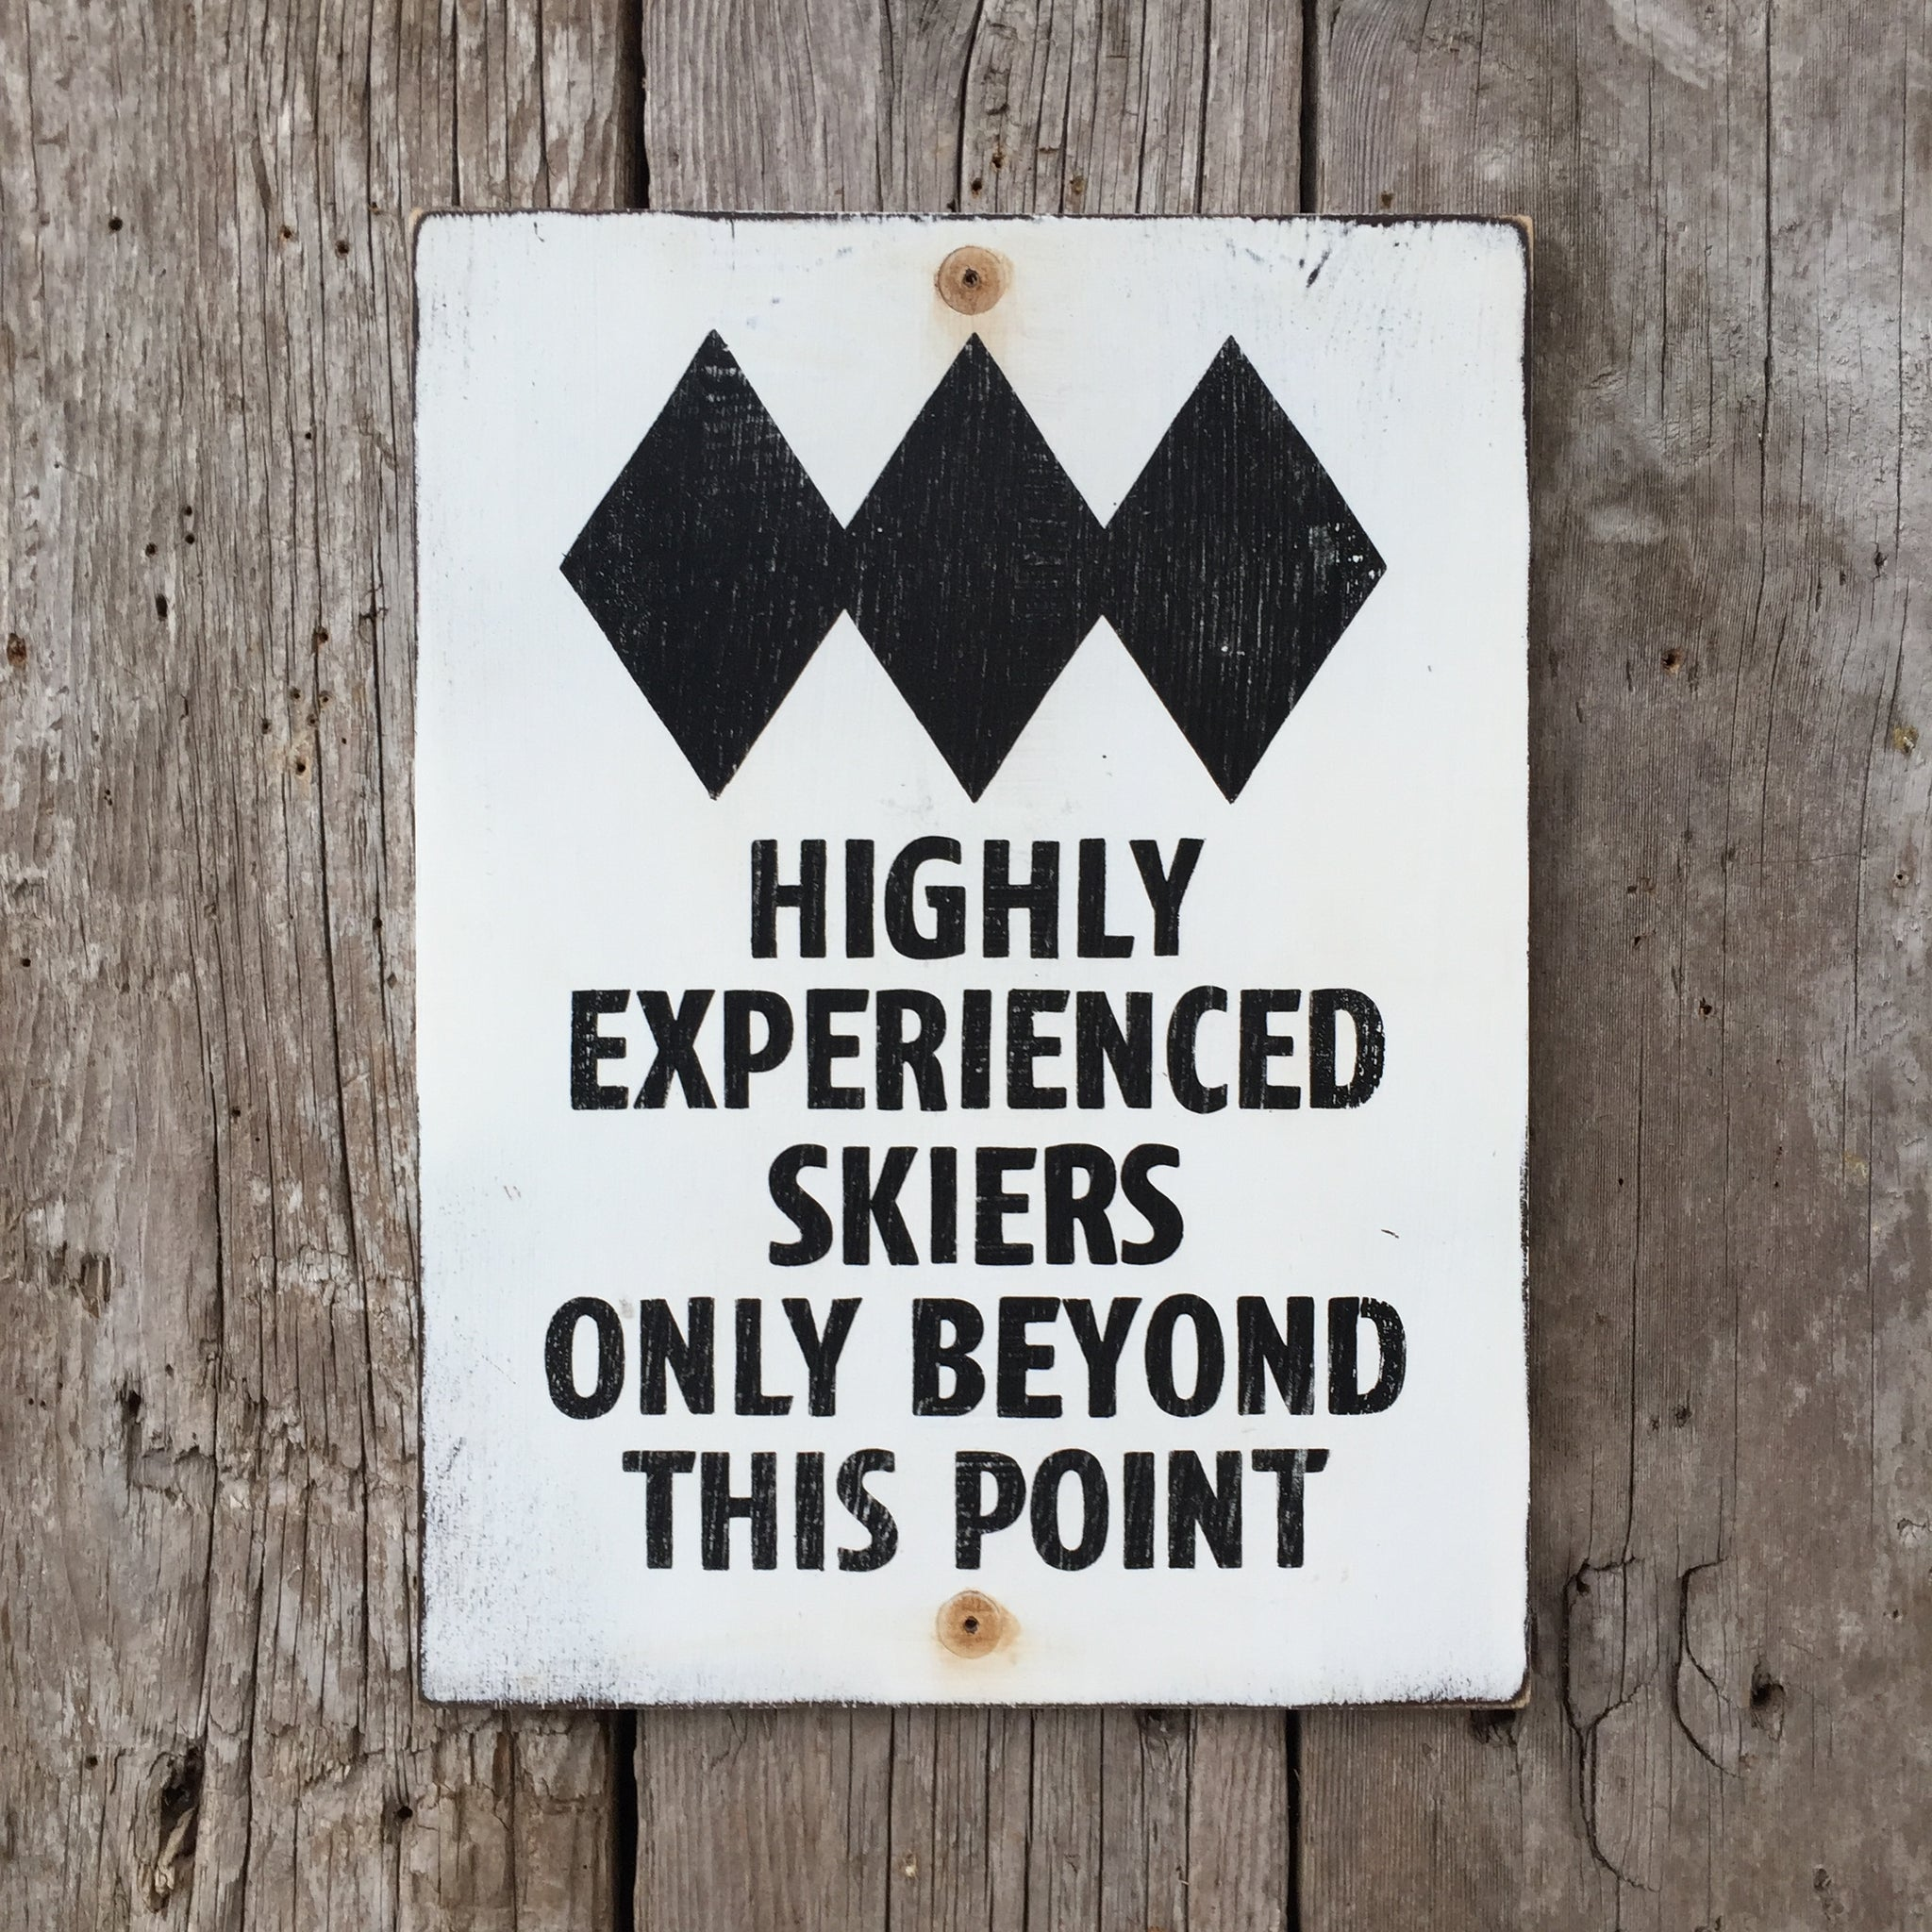 Handmade Vintage Black Diamond Highly Experienced Skiers Beyond This Point Ski Hill Sign